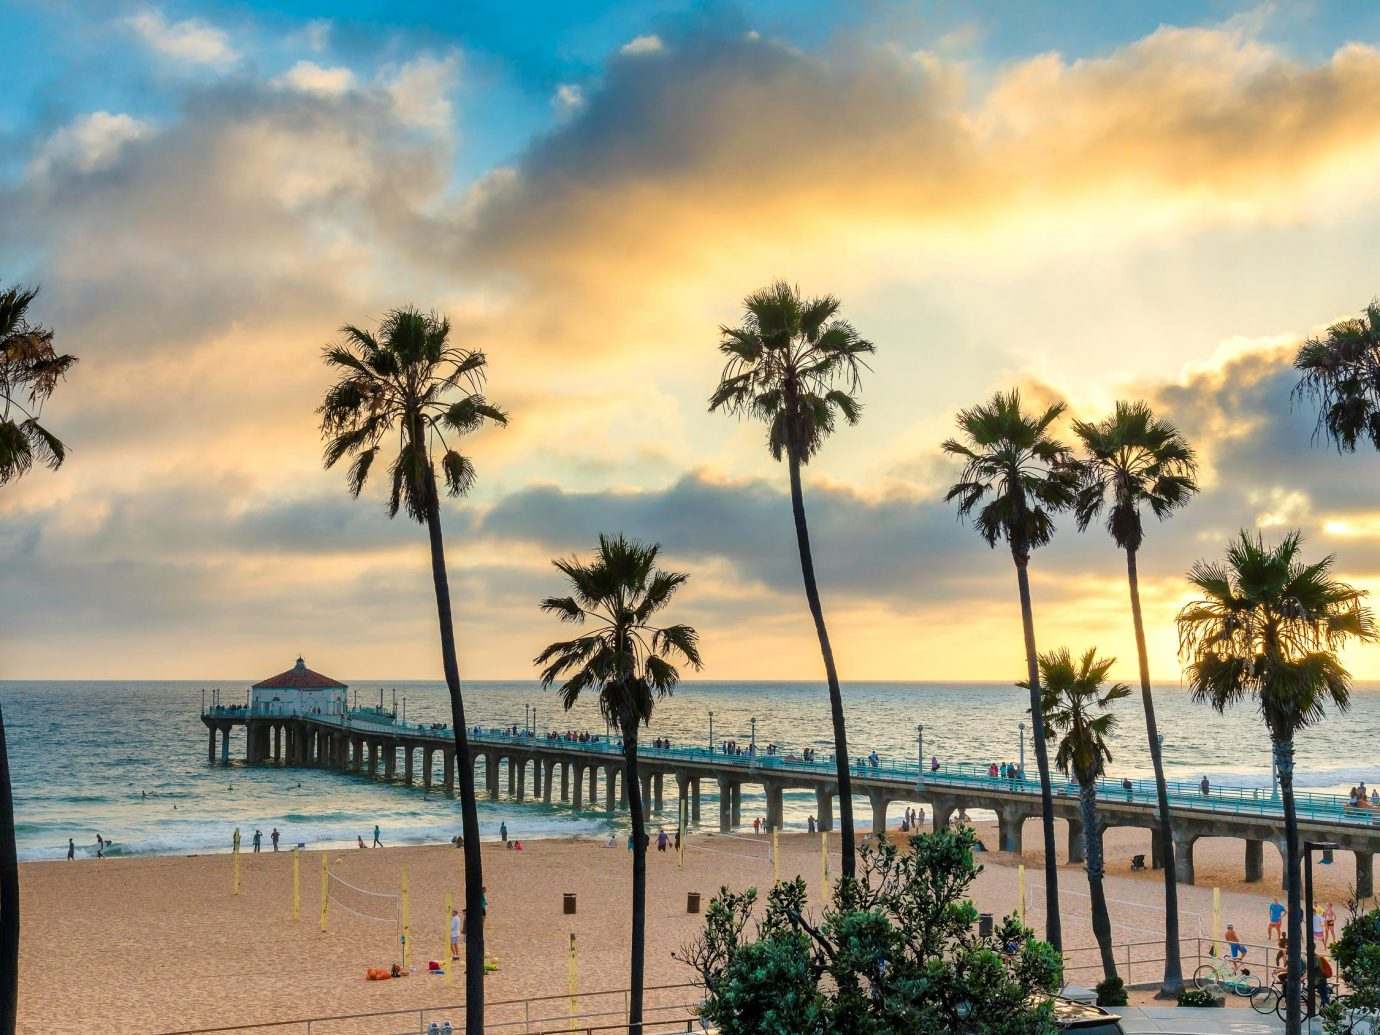 Palm trees in Manhattan Beach and pier at sunset, Los Angeles, California.